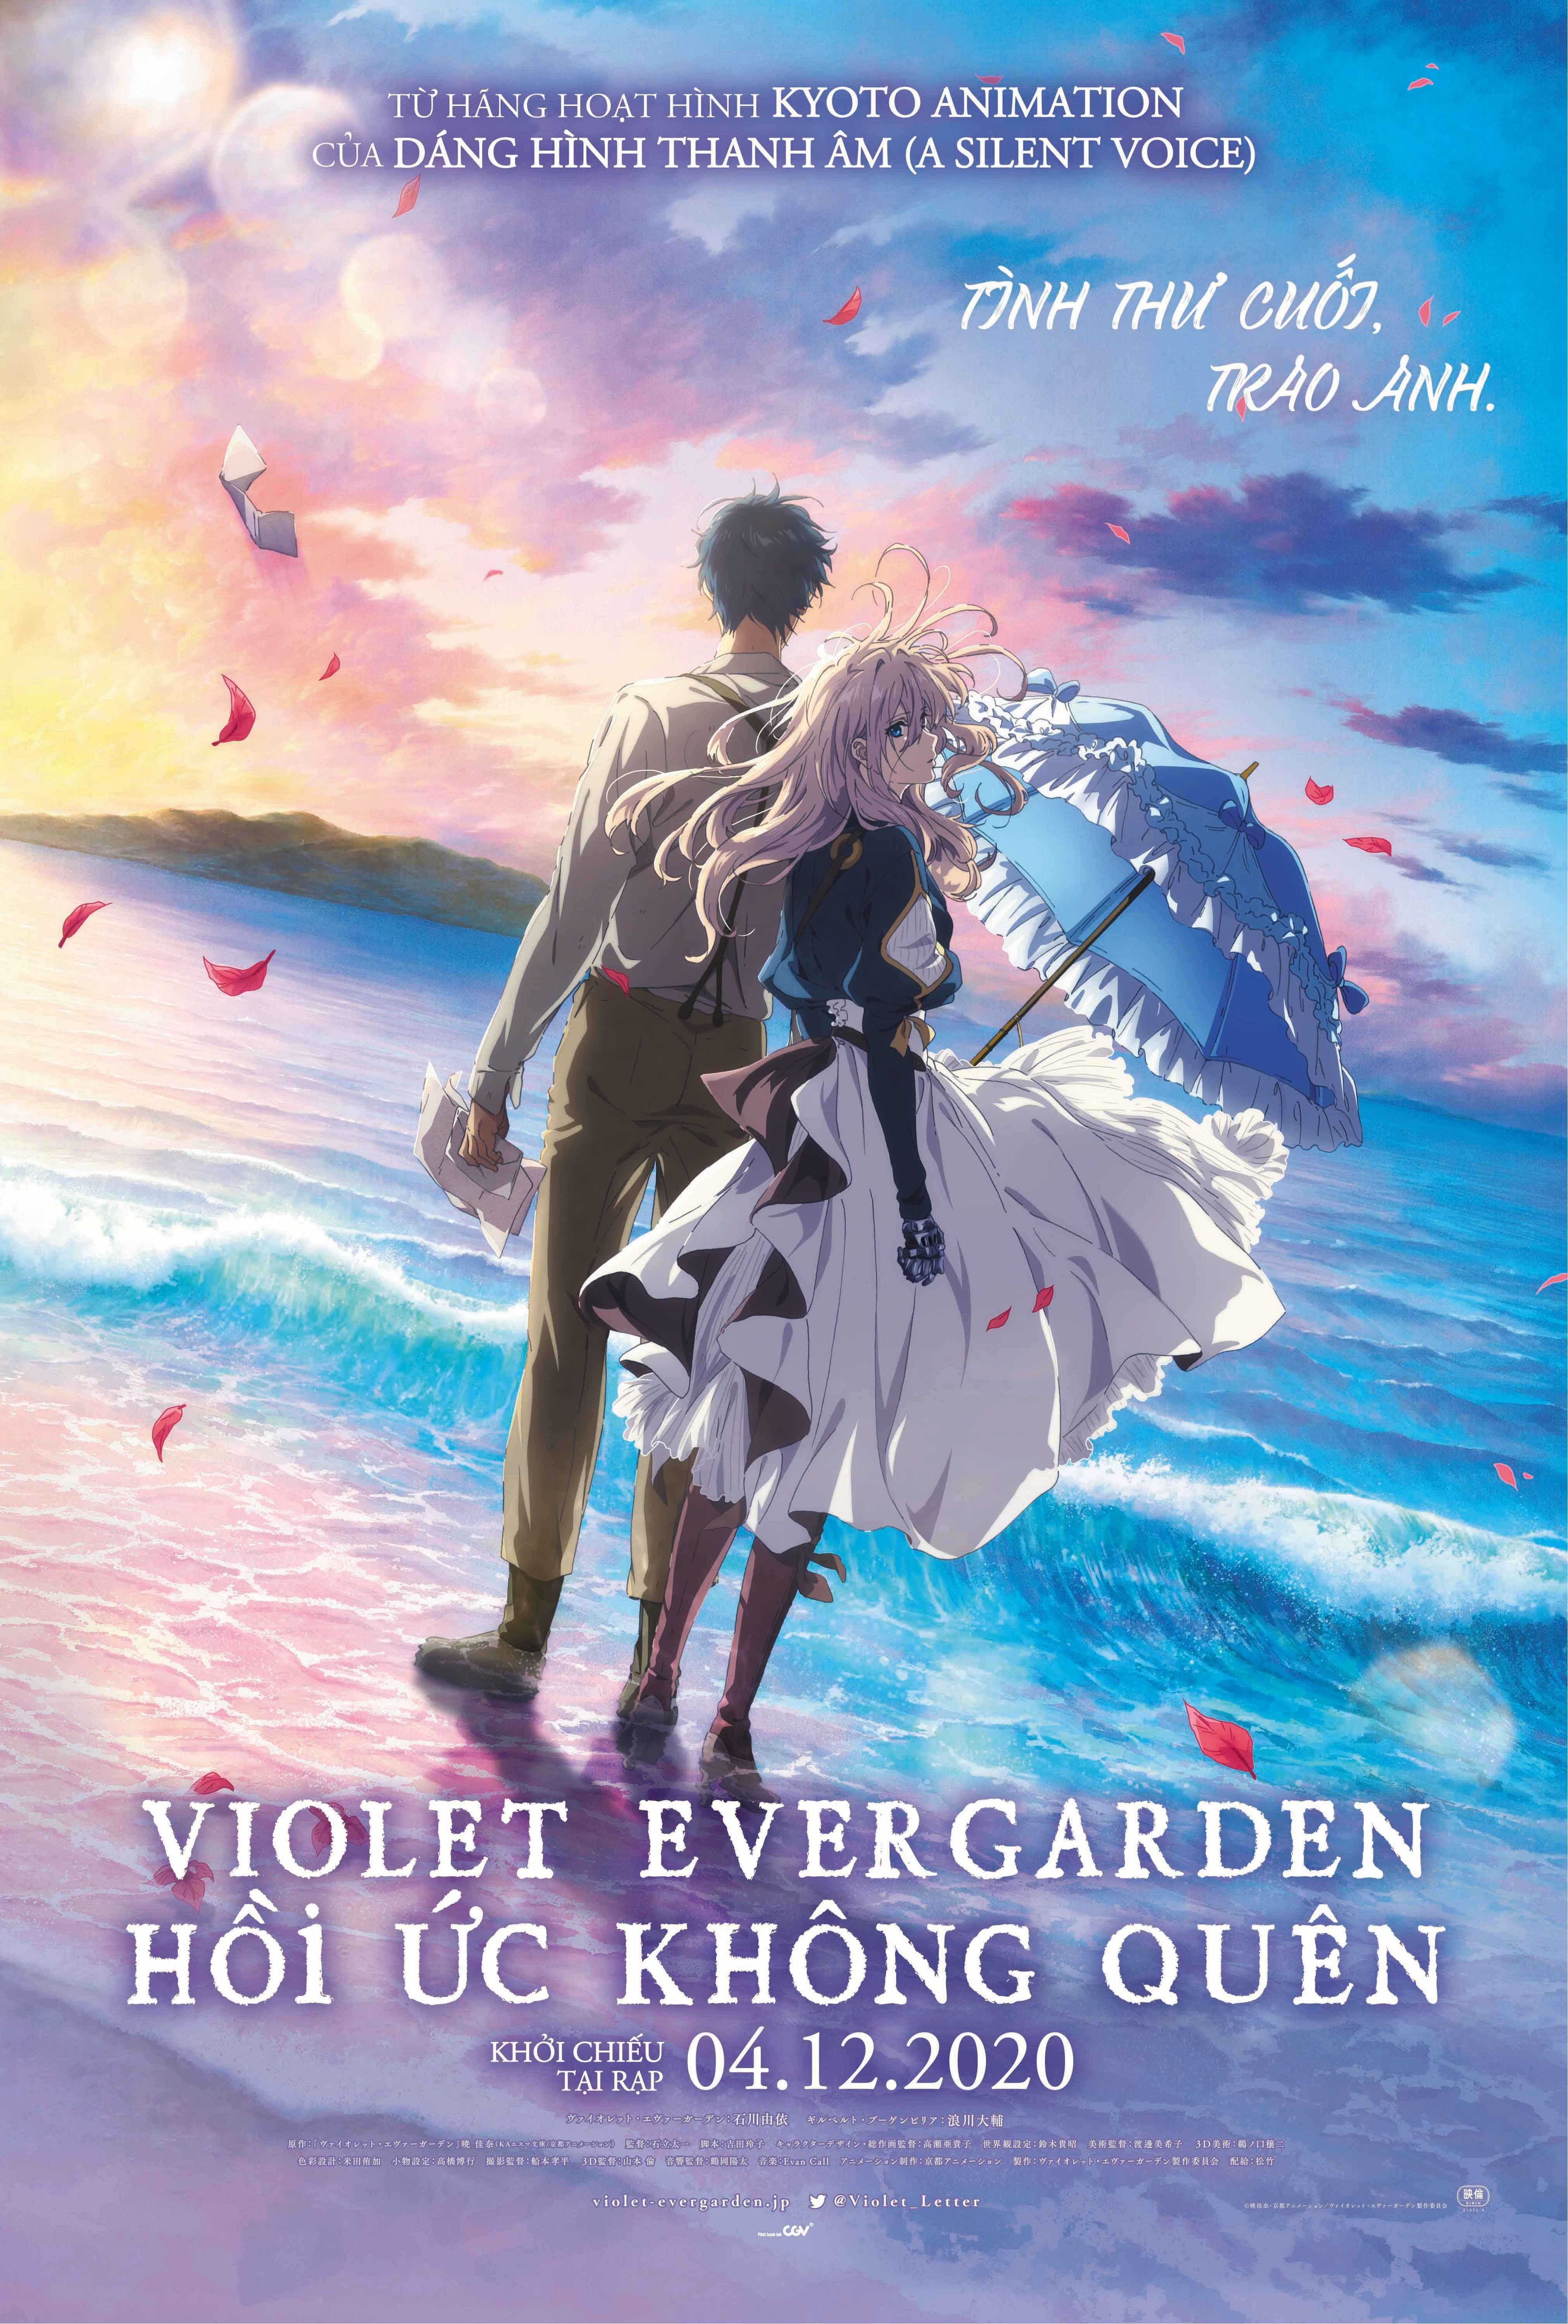 VIOLET-EVERGARDEN-THE-MOVIE-Vietnamese-Poster